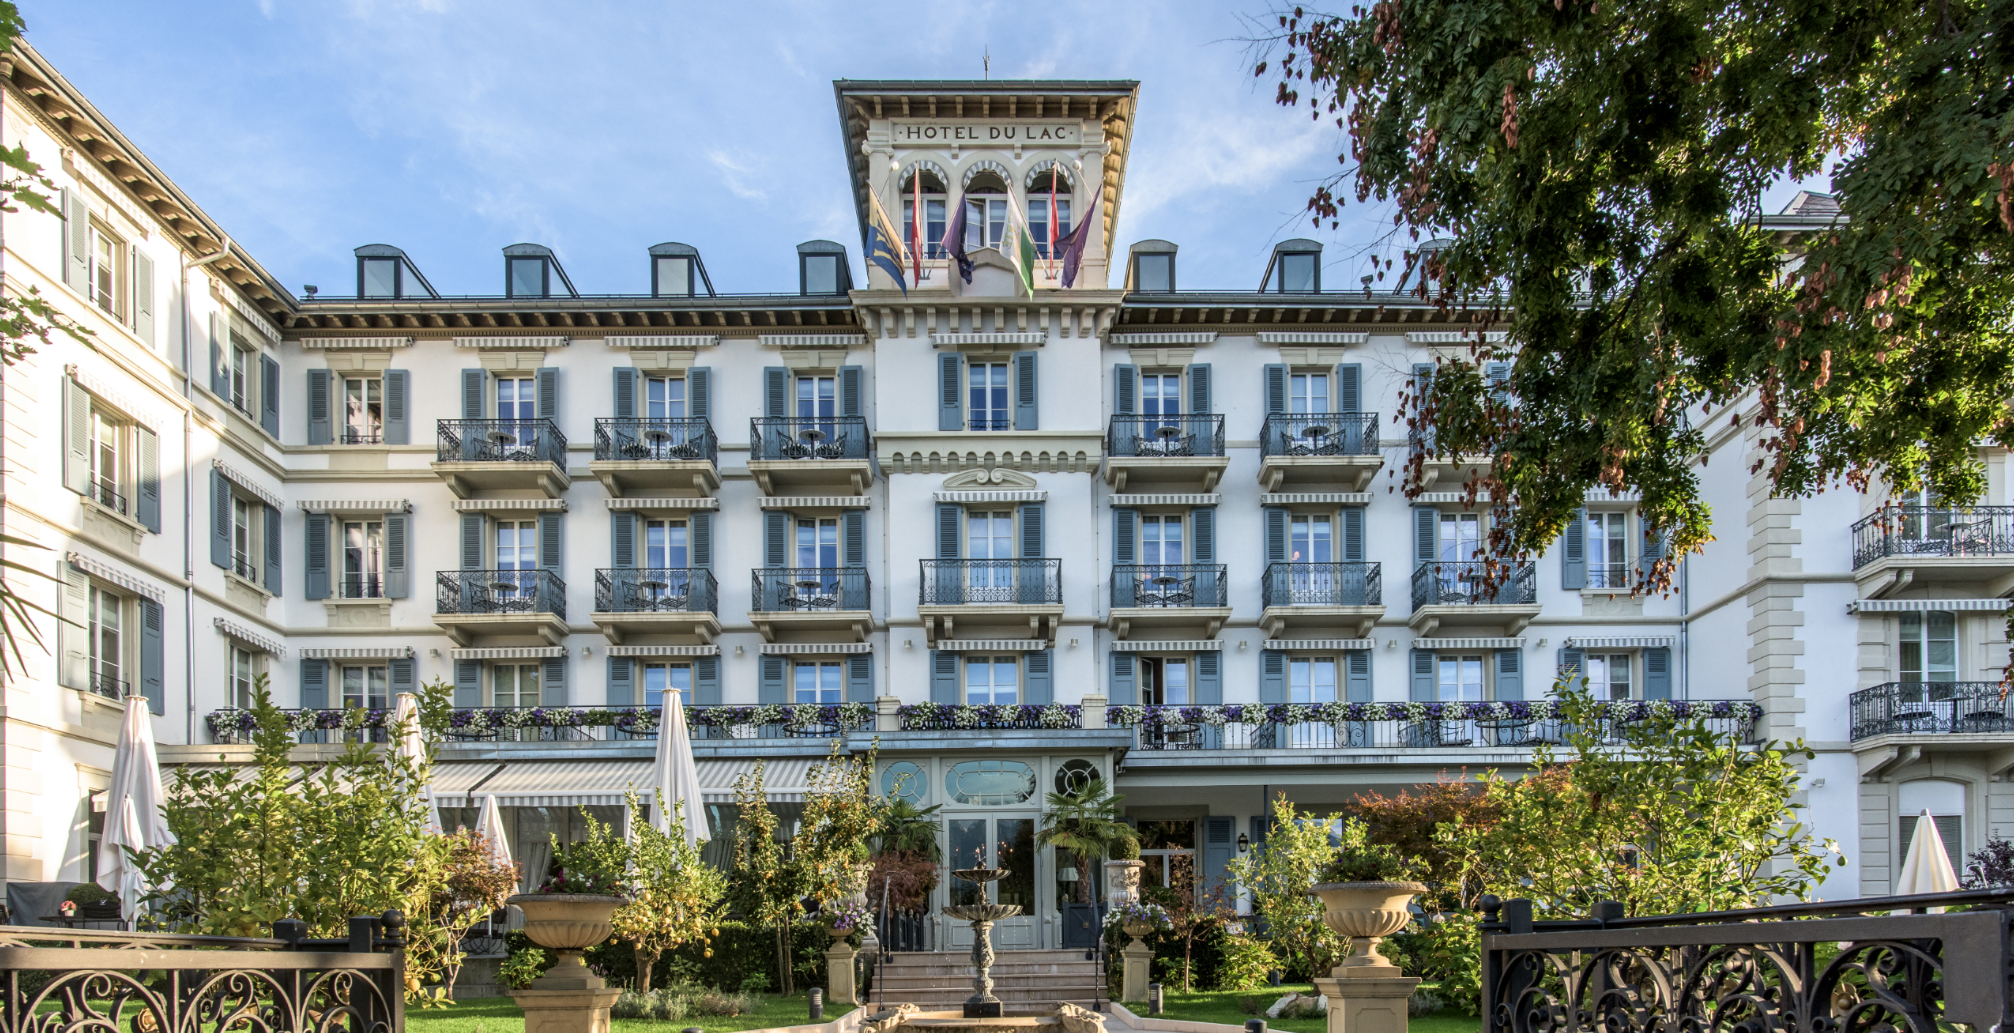 Atelier and lunch meal at the Grand Hôtel du Lac!